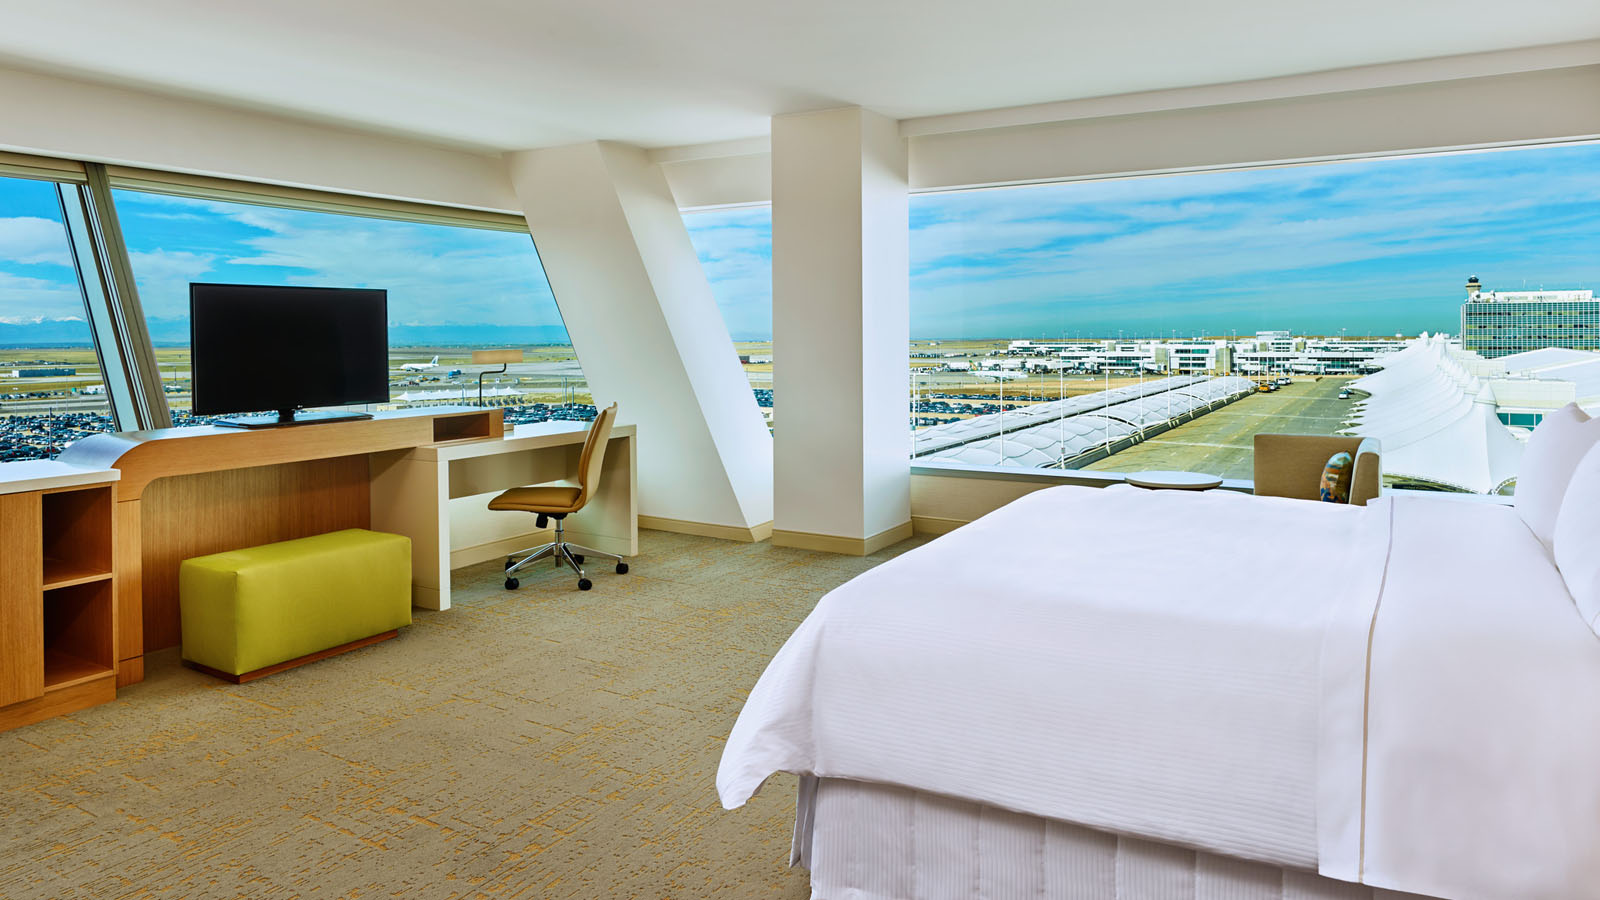 Denver Airport Lodging - Junior Suite - The Westin Denver International Airport